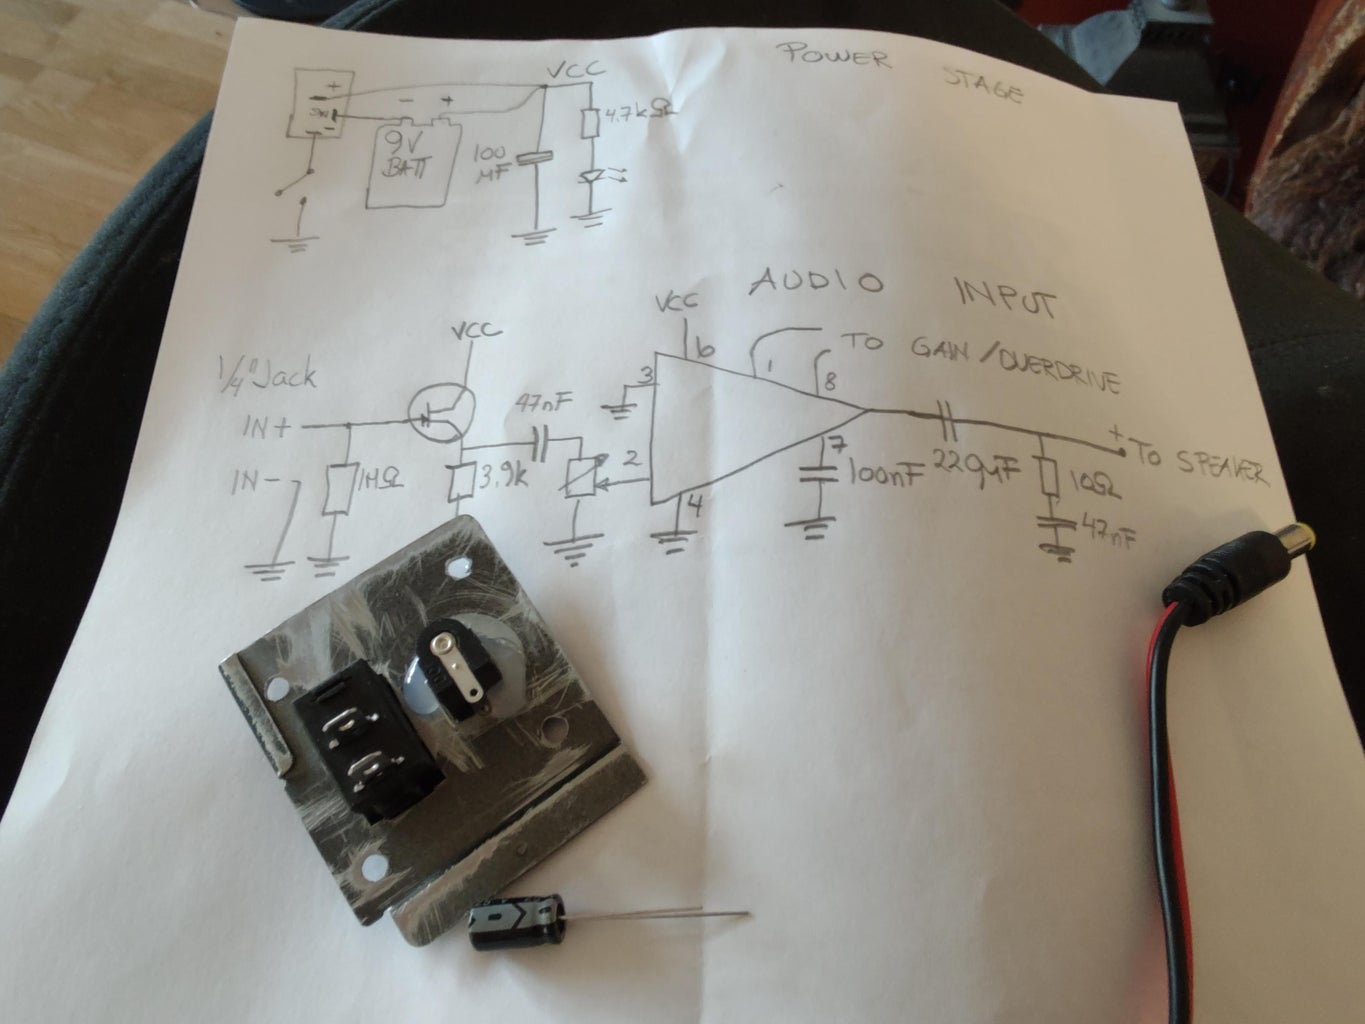 Build and Test the Circuit on a Prototyping Board